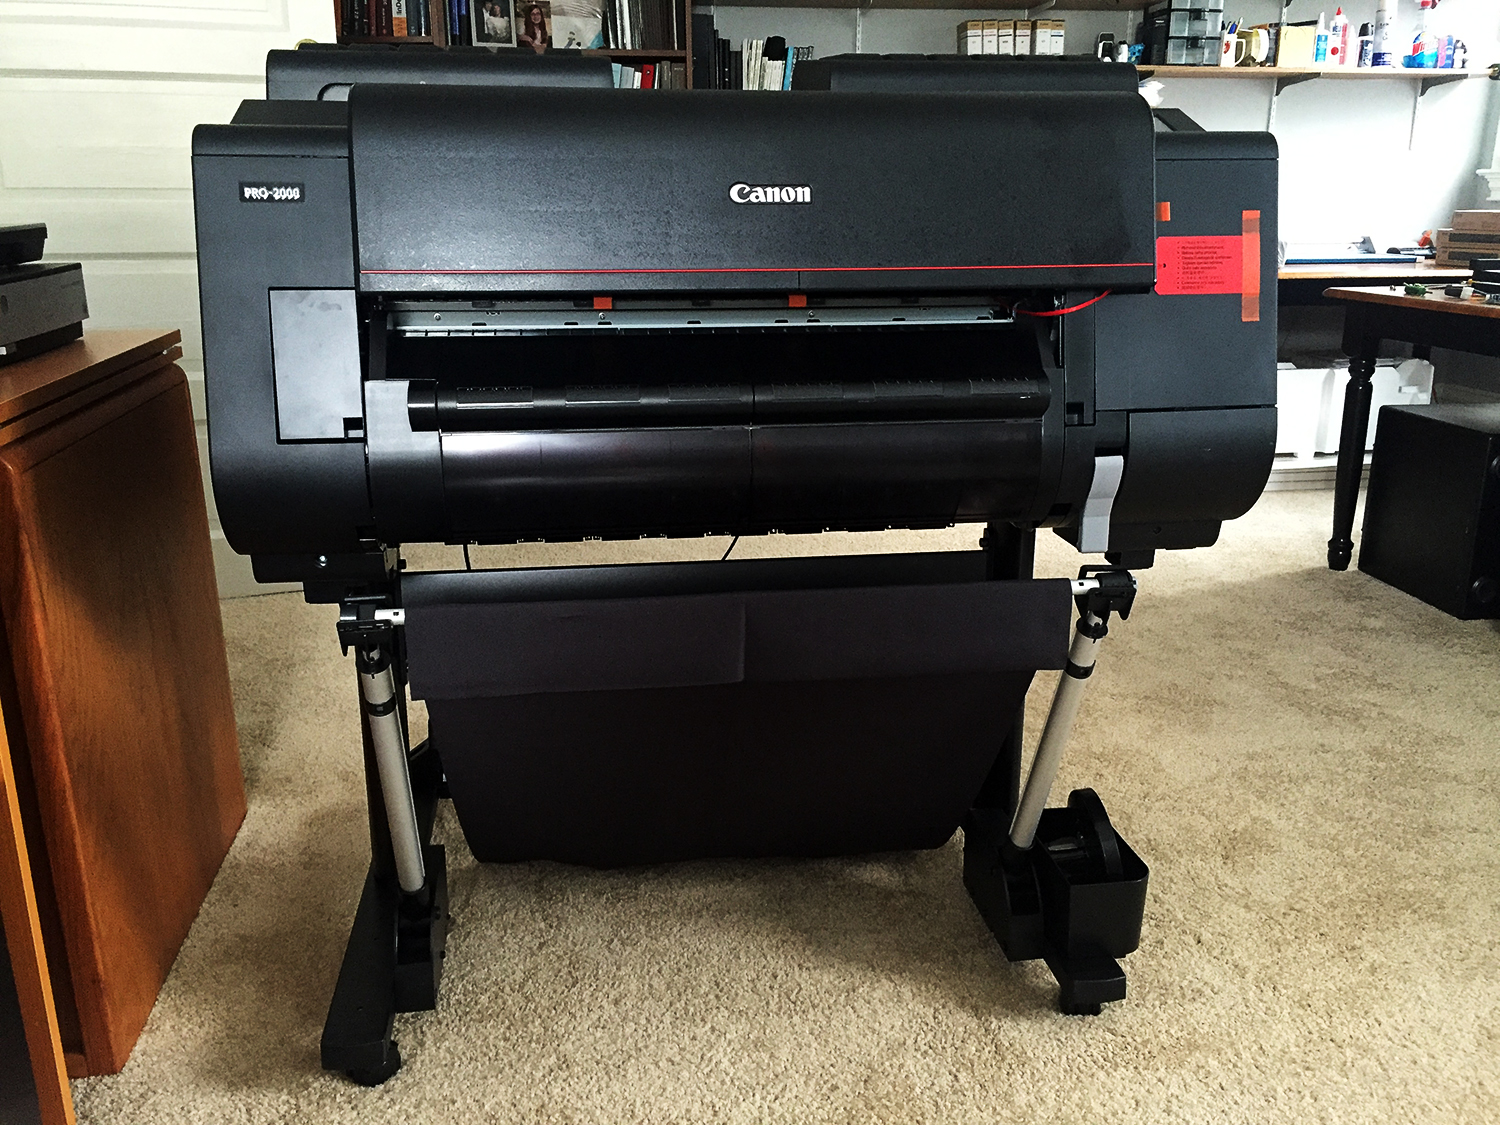 Problems With My Canon ImagePrograf 2000 Large Format Printer